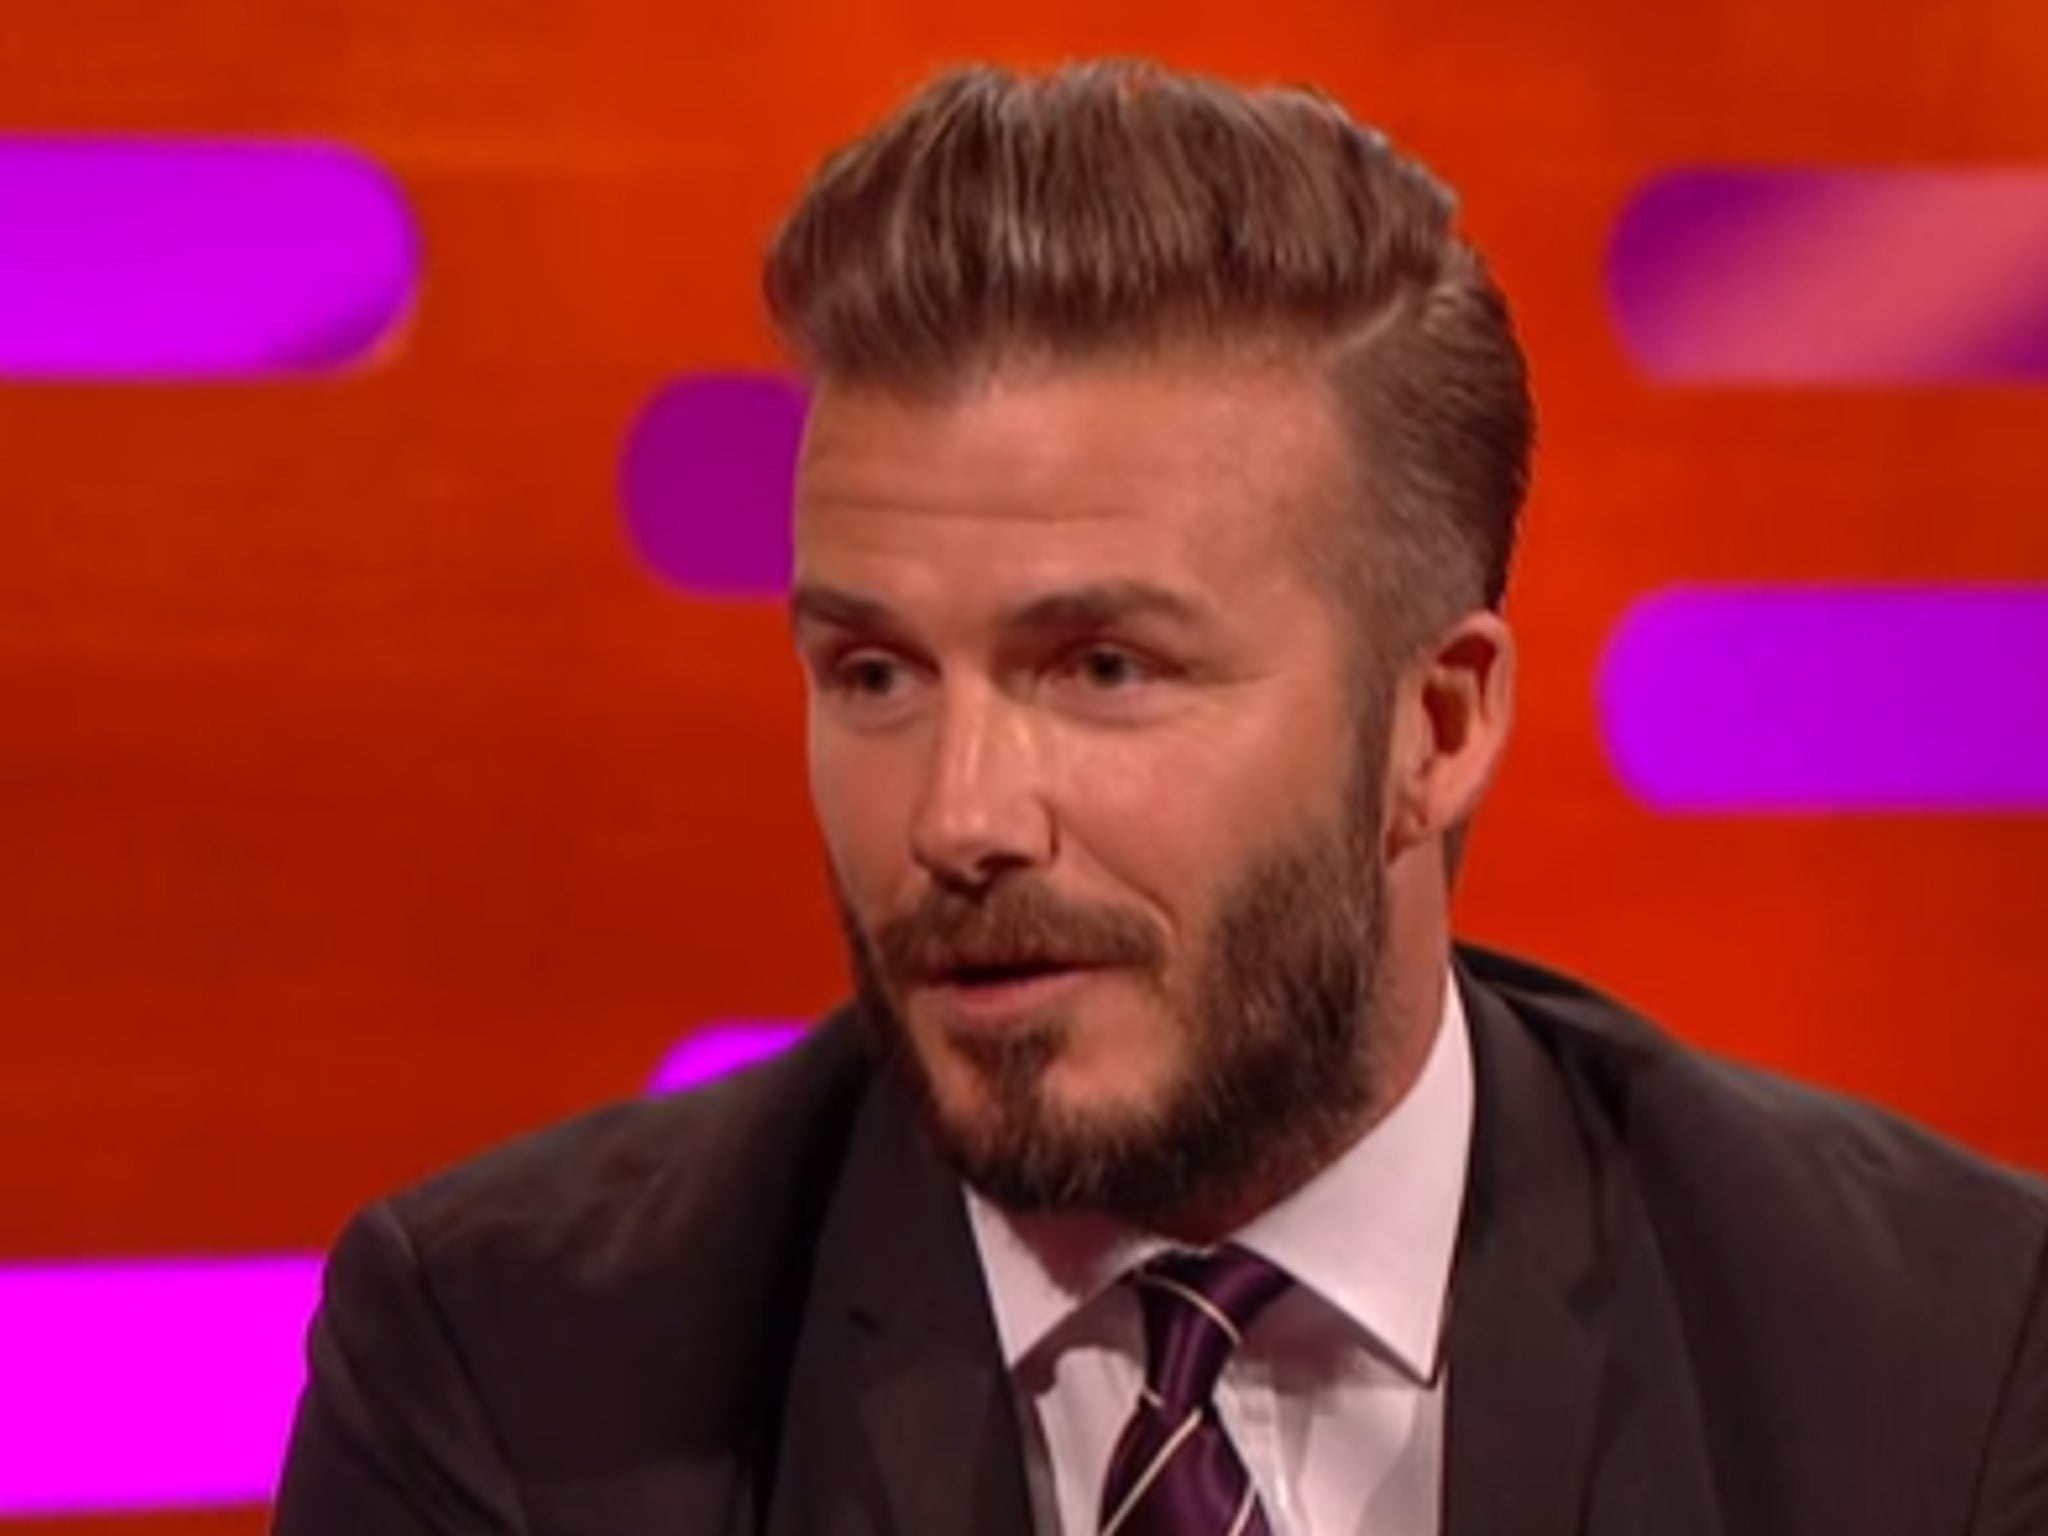 Cleaning ladies mrs overall on the graham norton show this week and - David Beckham S Emails Will Not Finish Off Our Golden Balls But They Re Having A Bloody Good Go The Independent